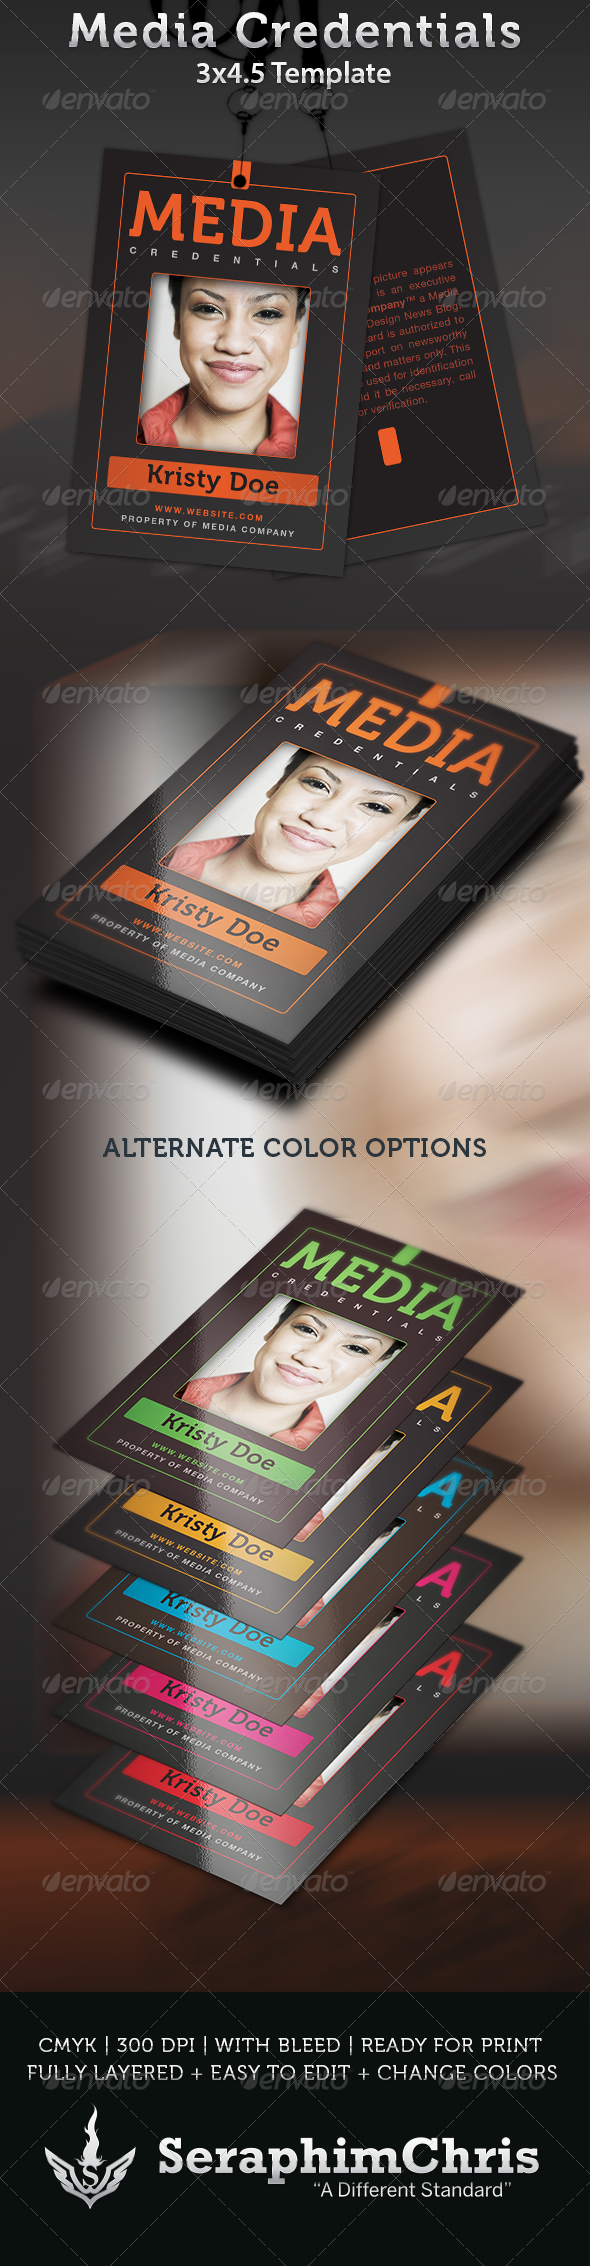 Media Credentials Template - Miscellaneous Print Templates